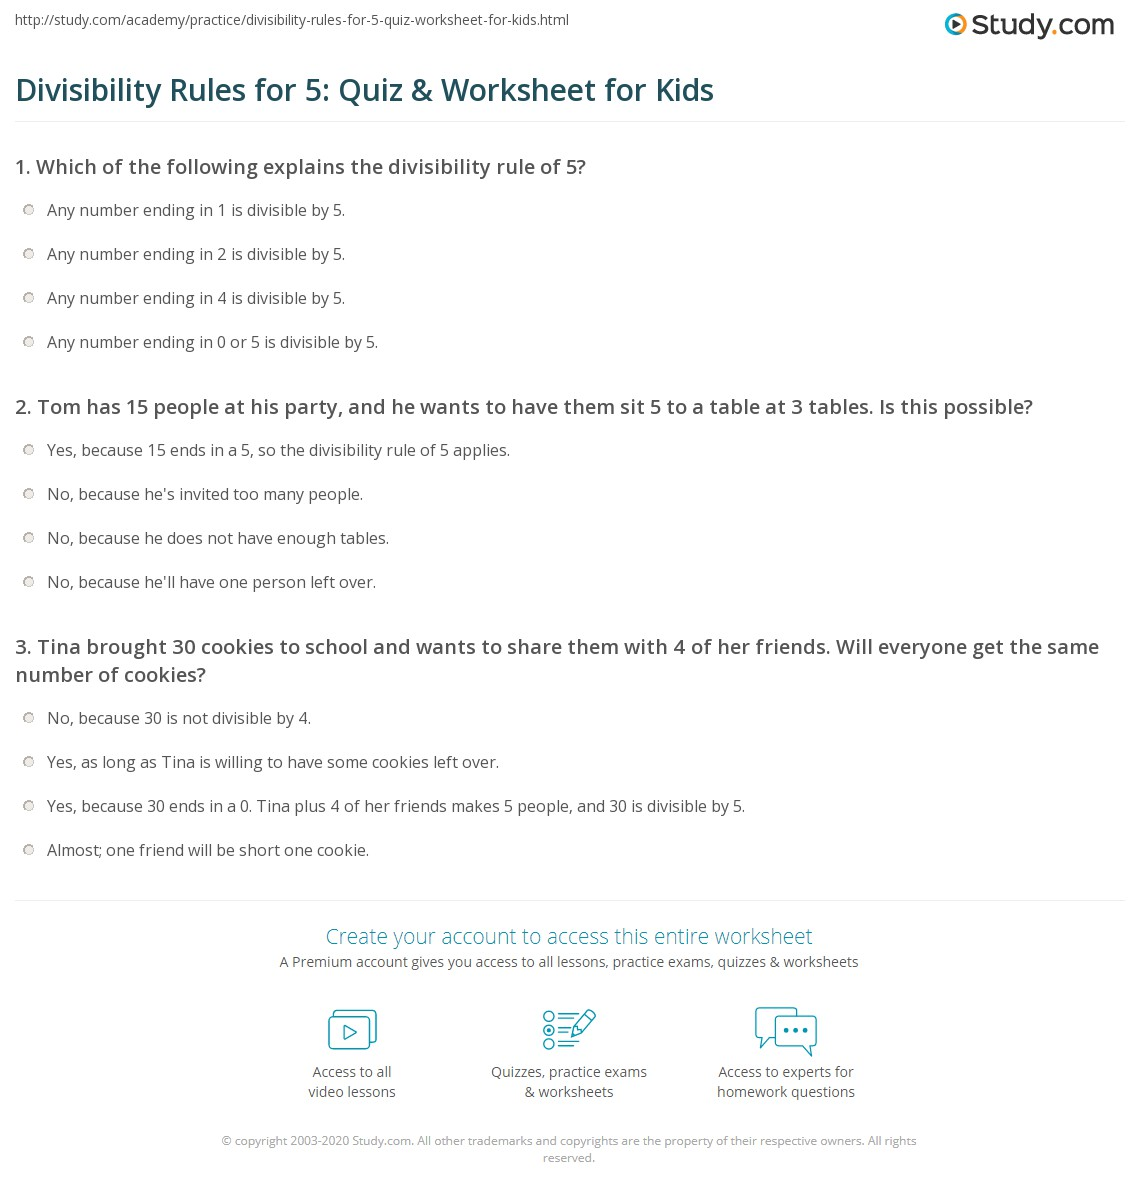 Divisibility Rules for 5 Quiz and Worksheet for Kids – Rules of Divisibility Worksheet